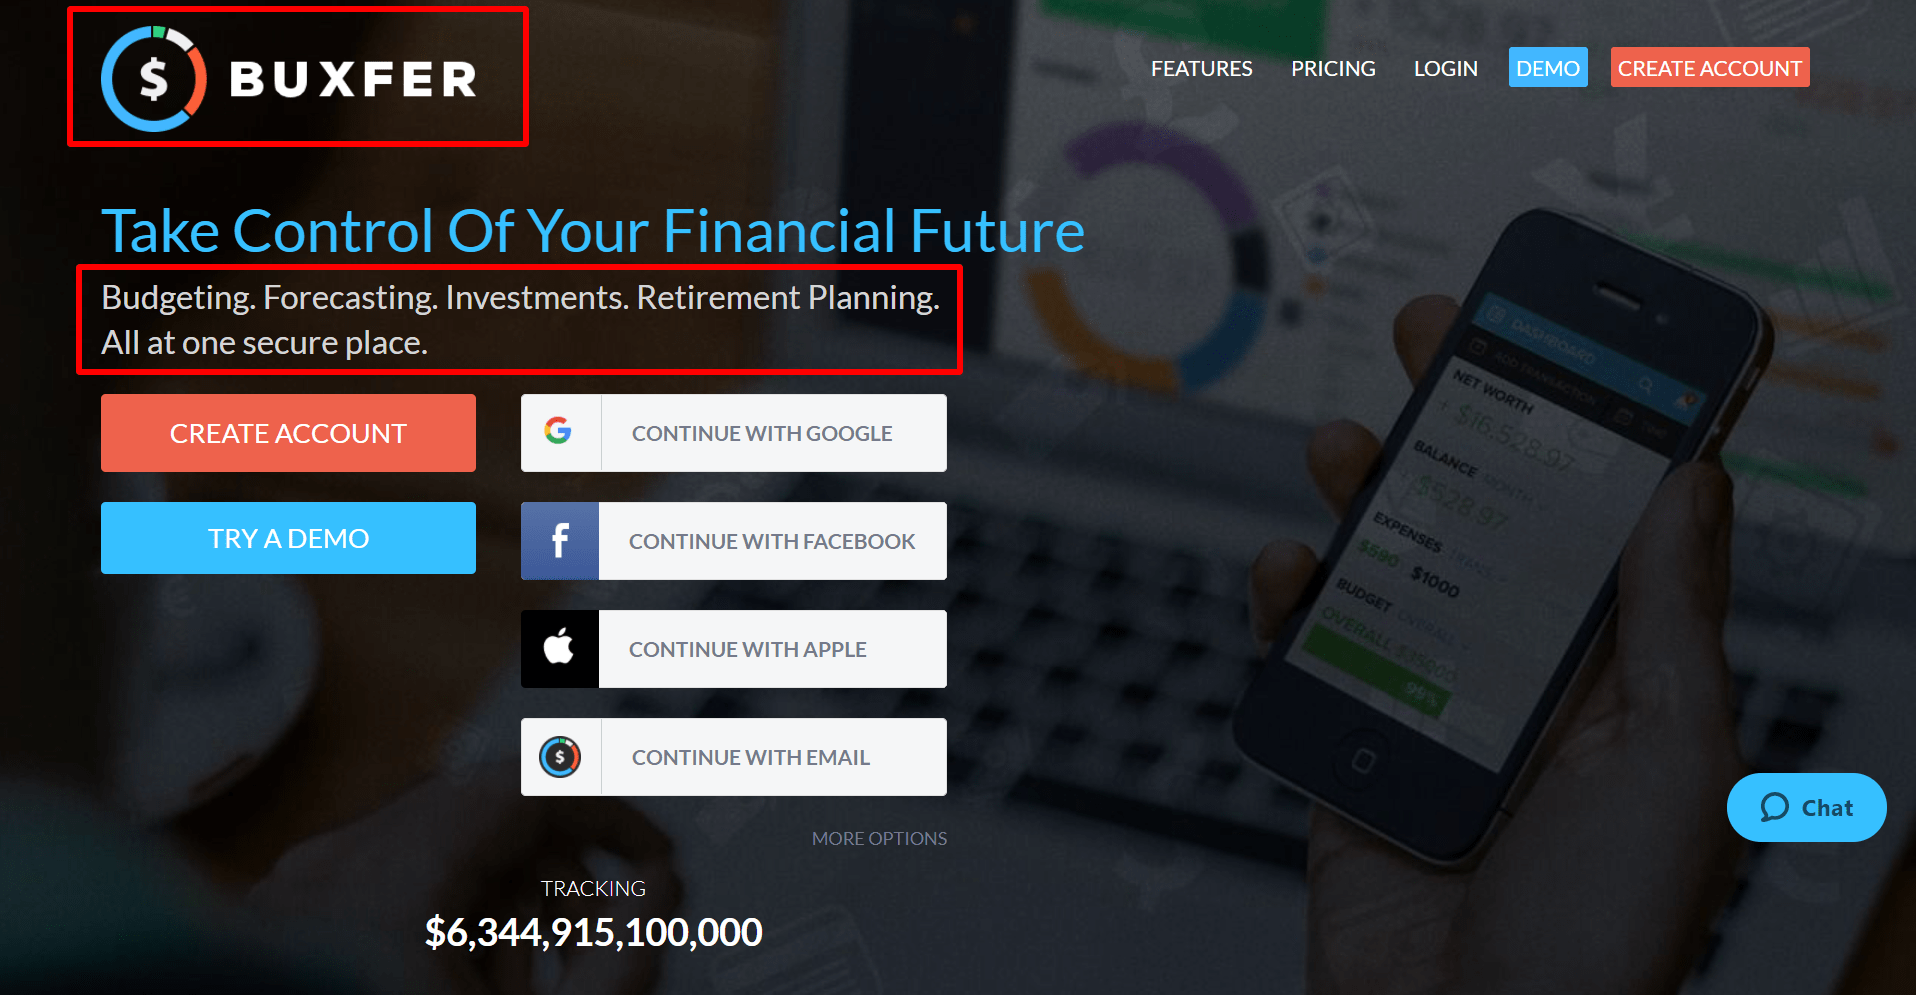 The-Best-Budget-App-Expense-Tracker-for-2021-Track-your-income-expenses-savings-investments-Buxfer